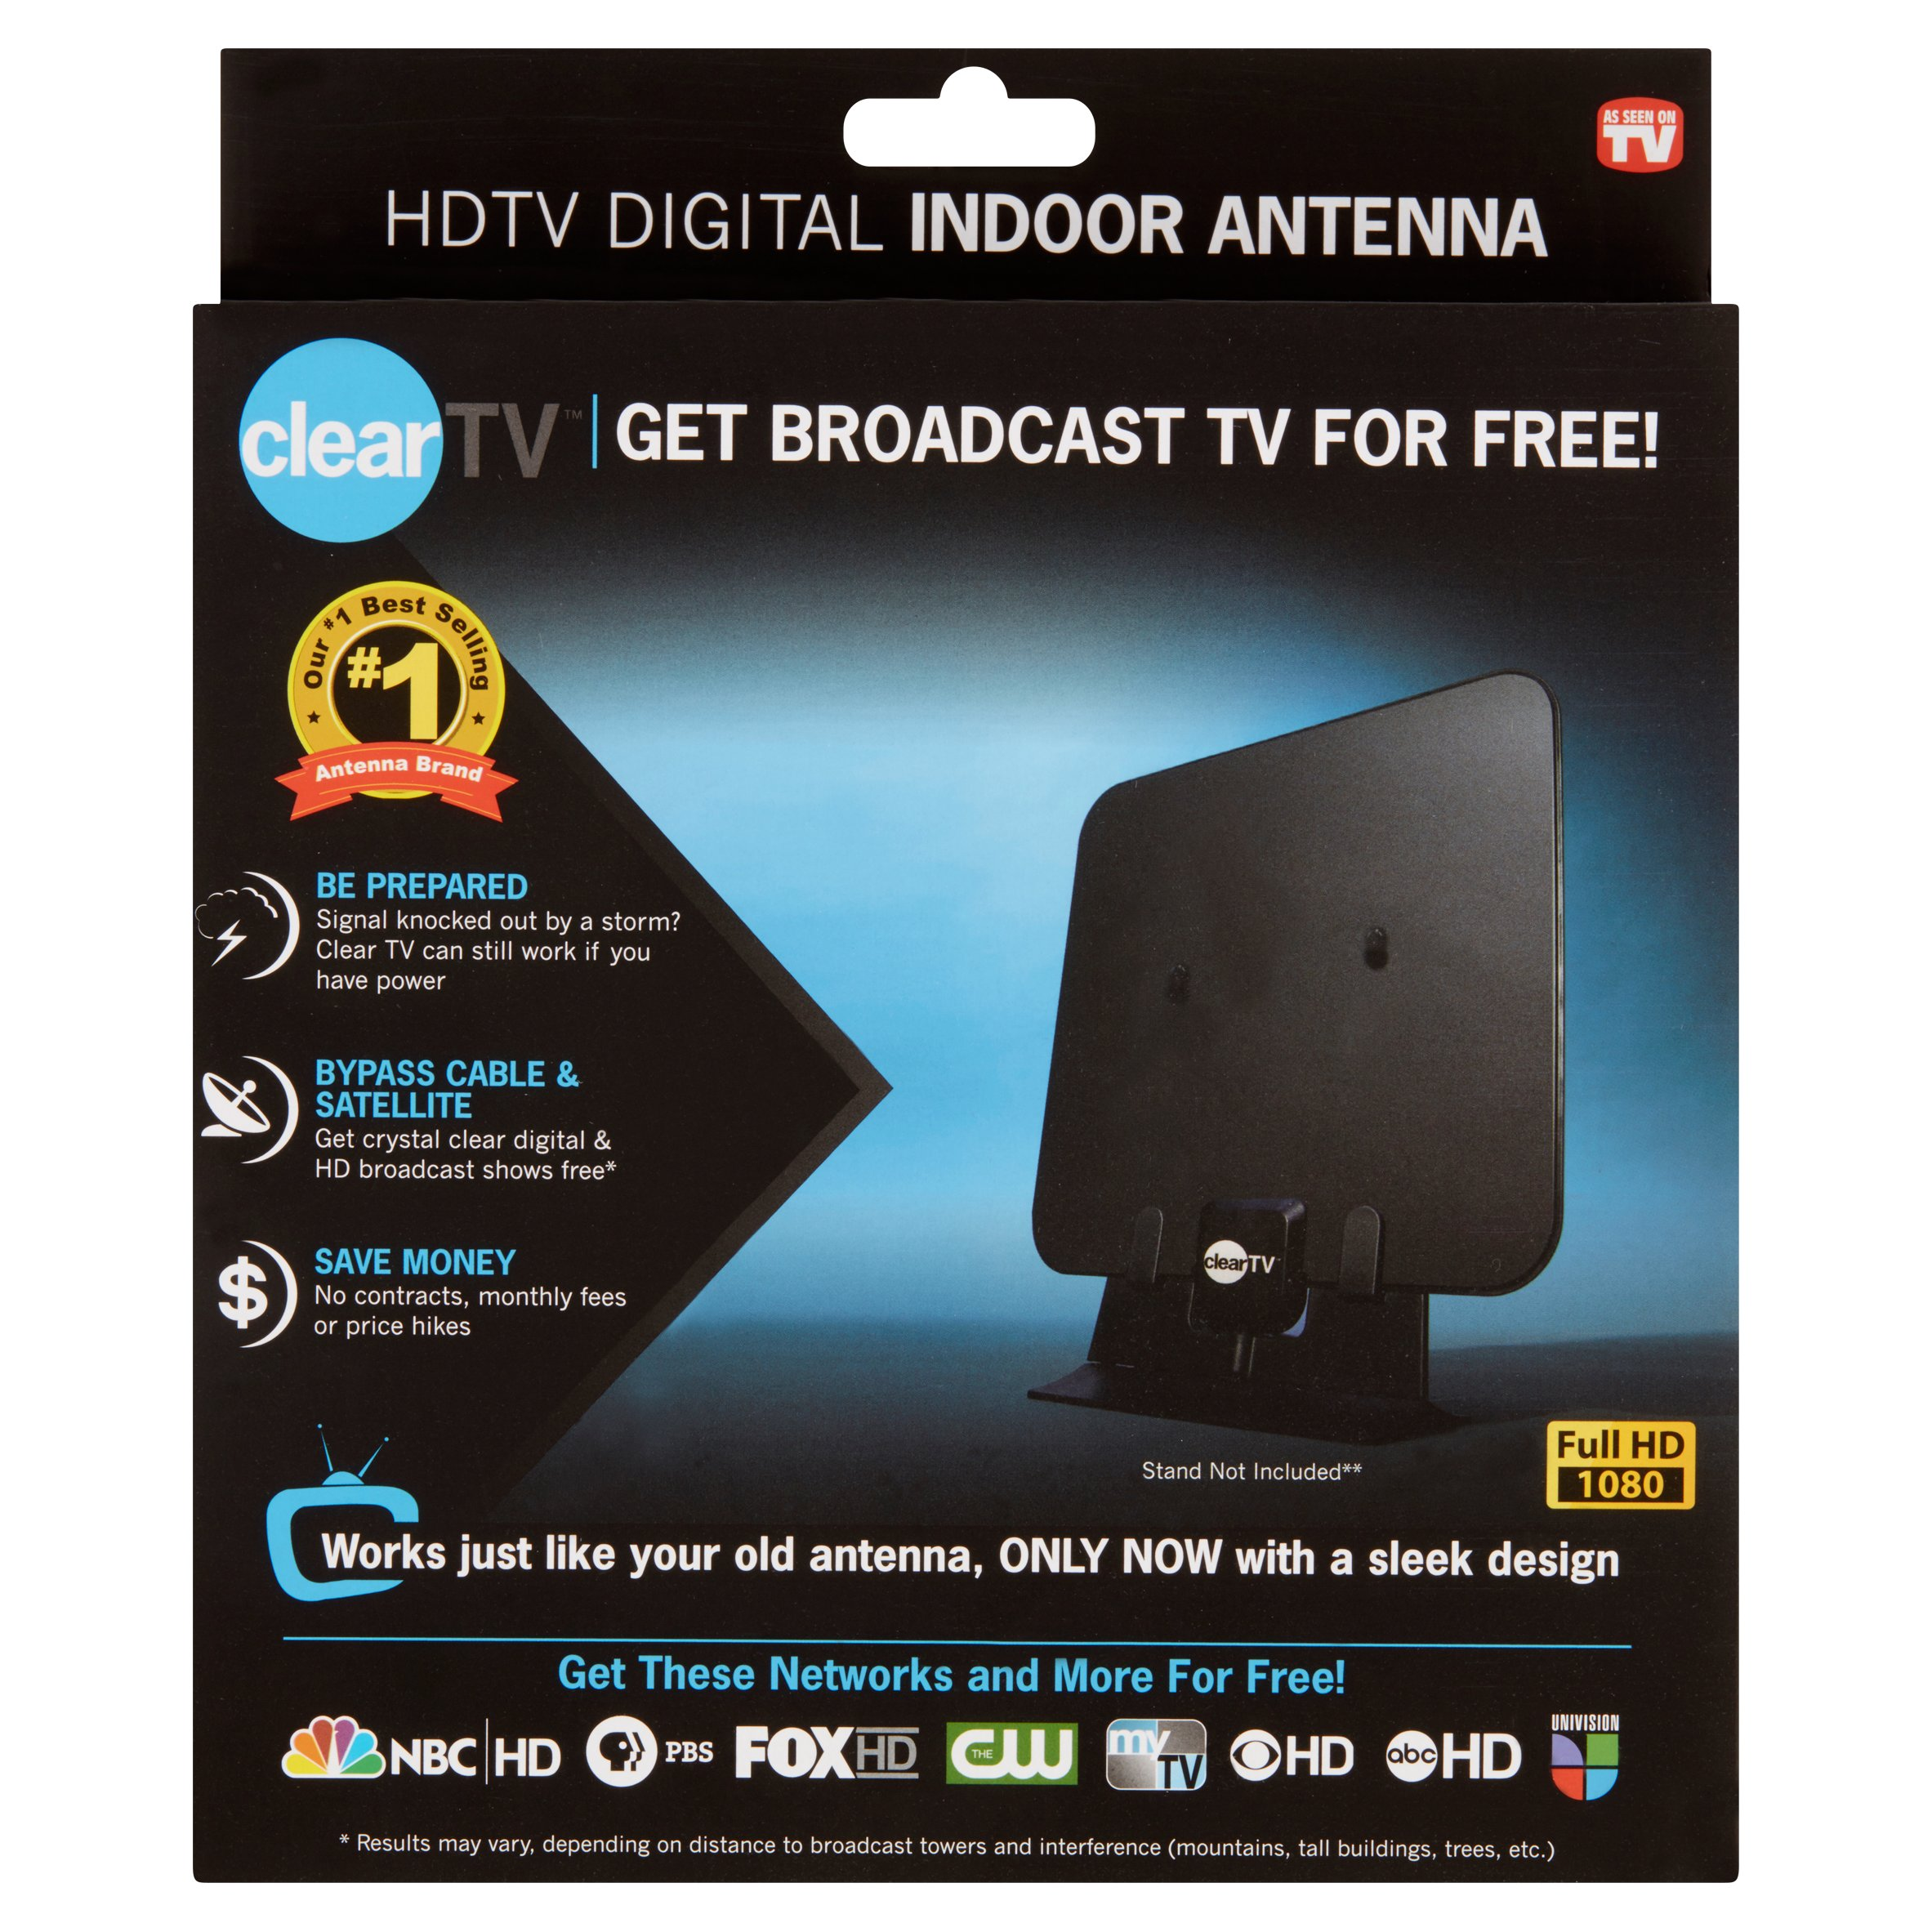 Clear TV HDTV Digital Indoor Antenna